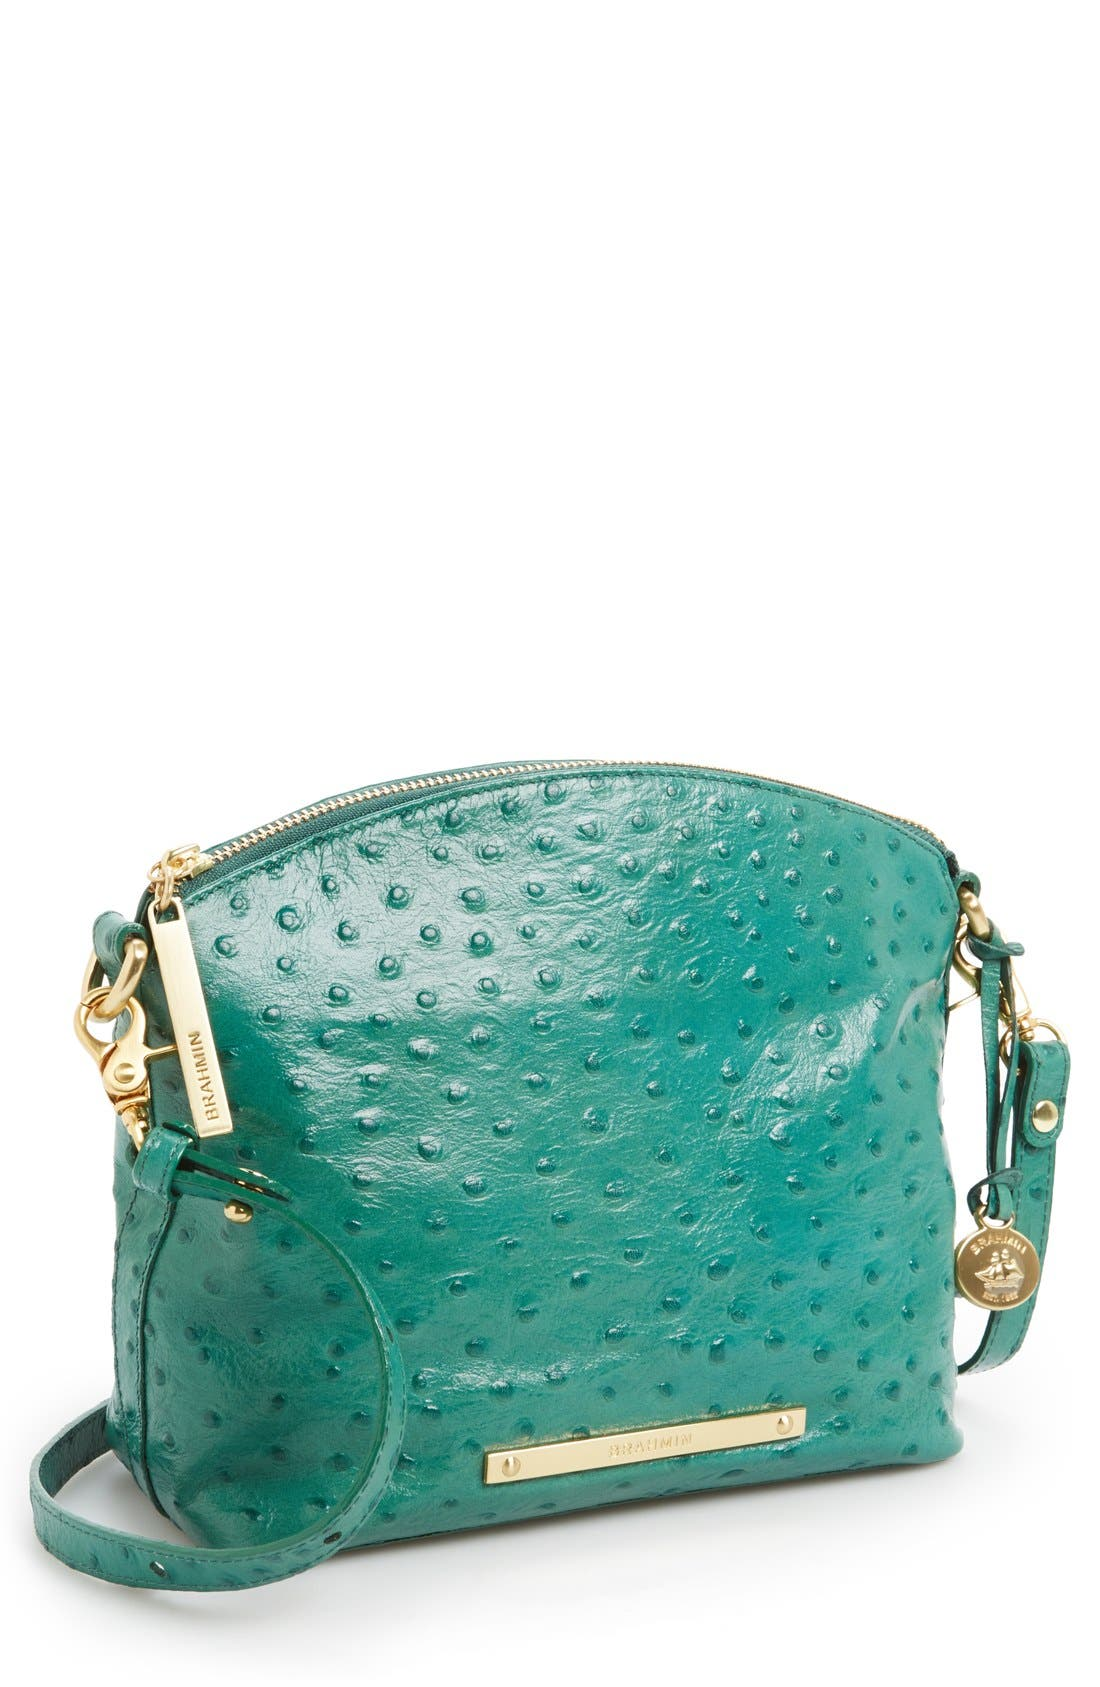 Alternate Image 1 Selected - Brahmin 'Mini Duxbury' Leather Crossbody Bag